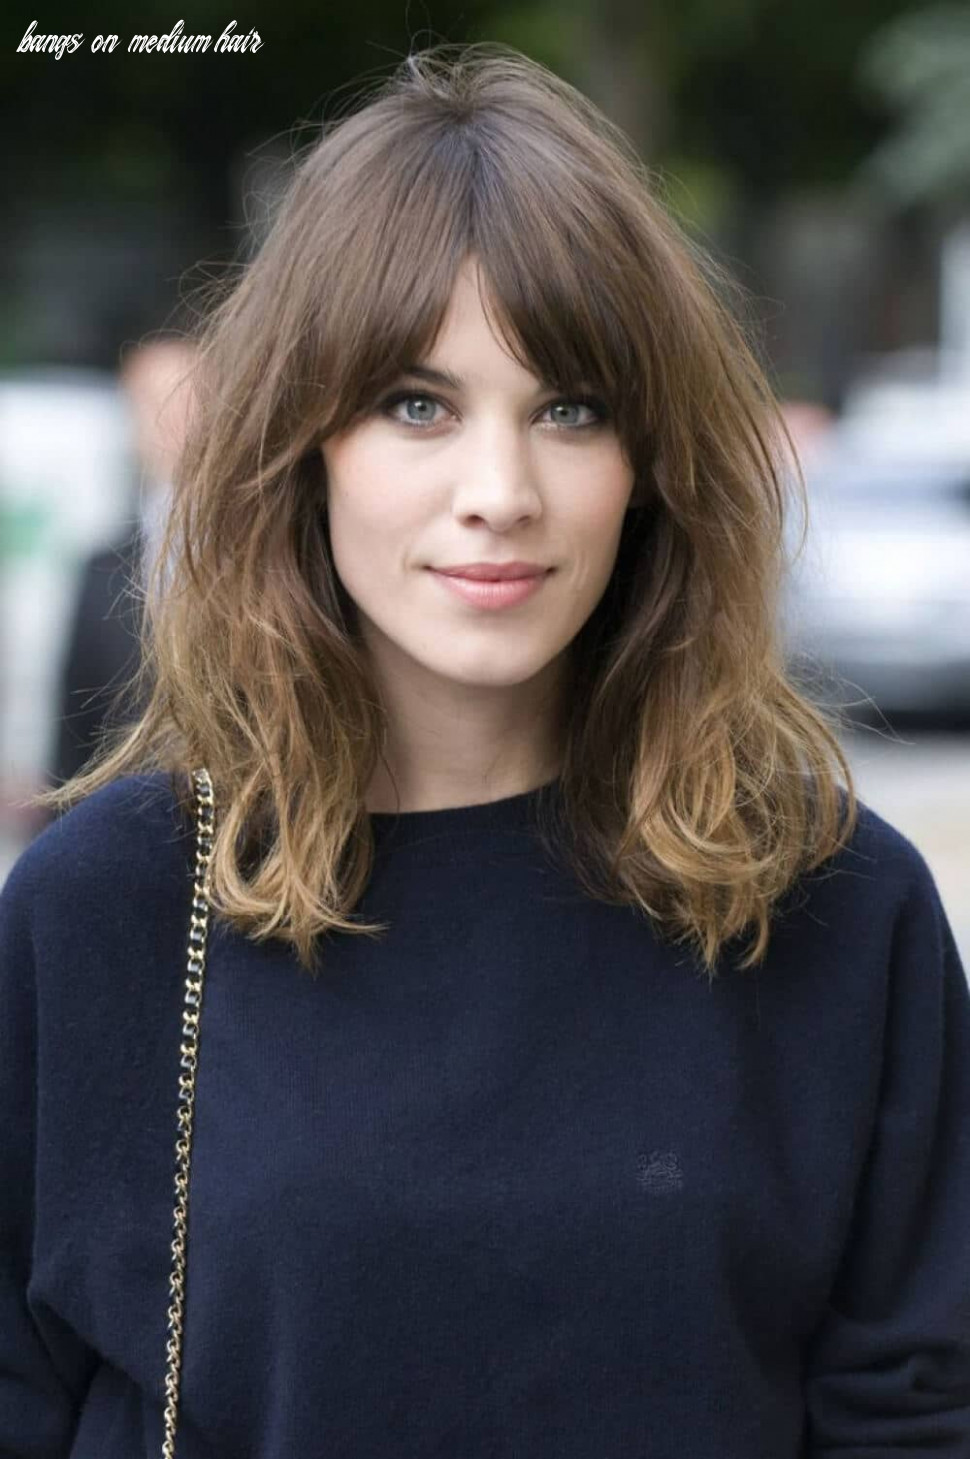 8 breezy hairstyles with bangs to make you shine in 8 bangs on medium hair